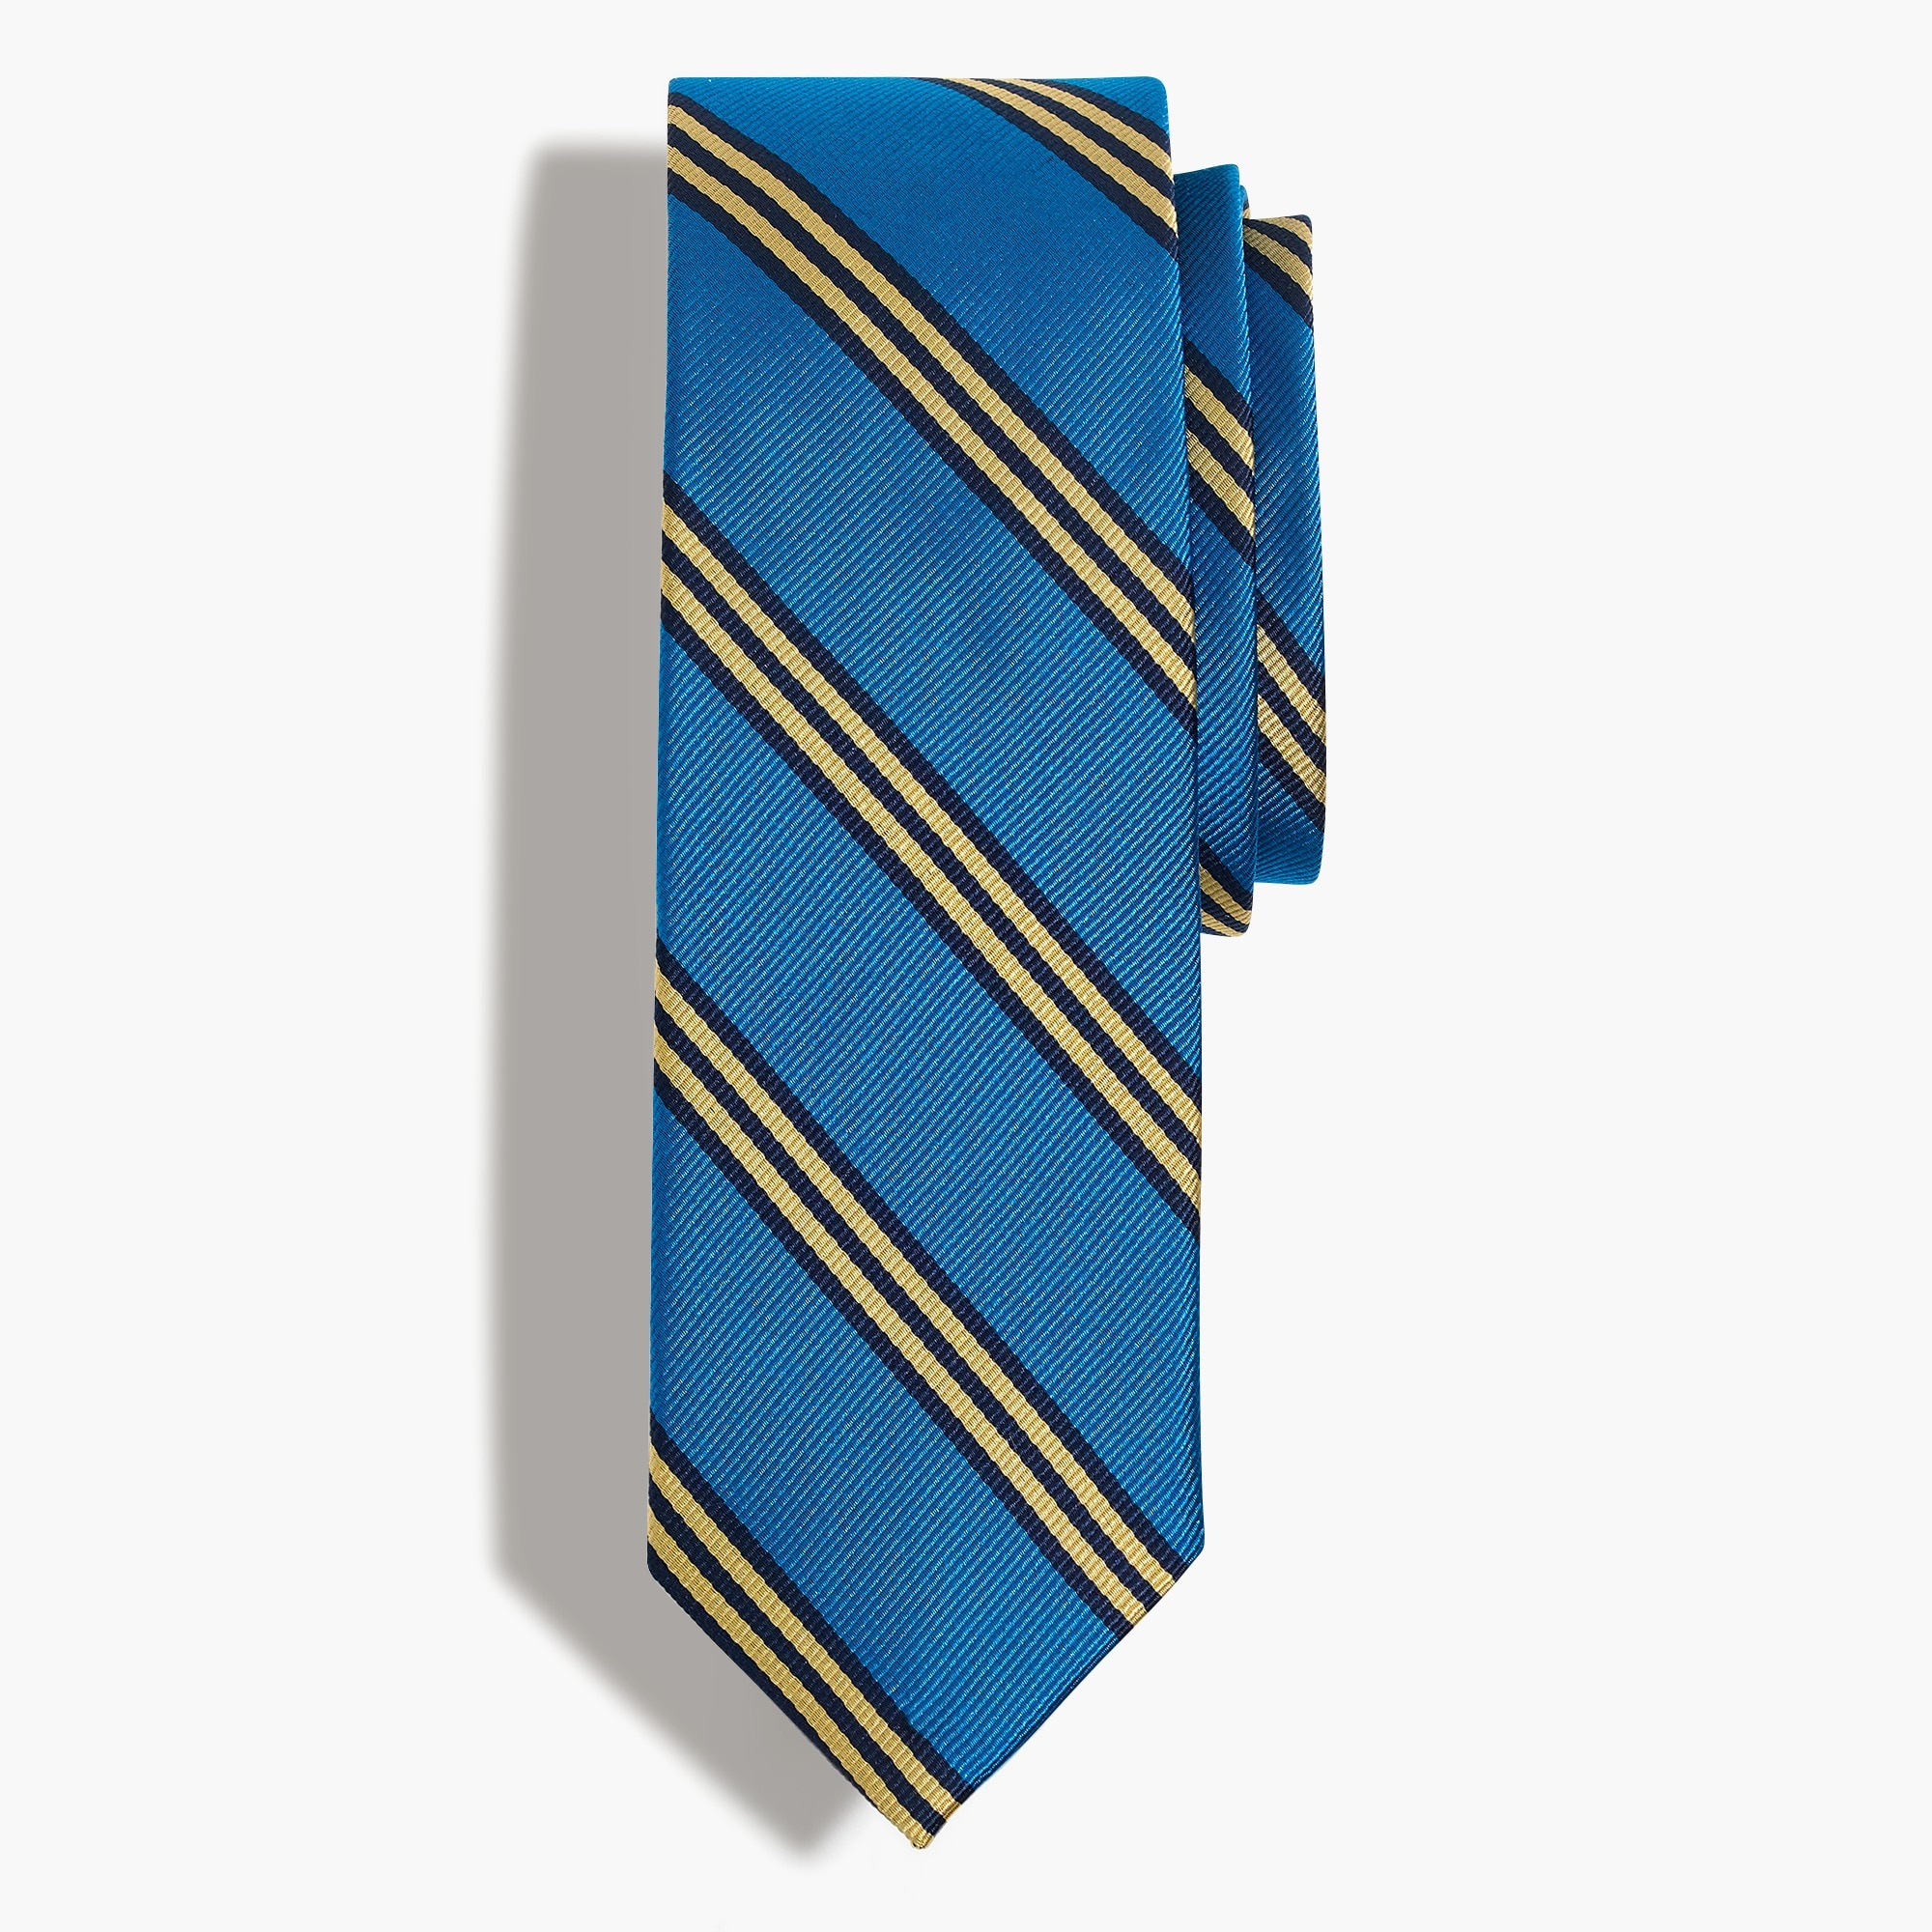 Image 1 for Silk tie in stripes